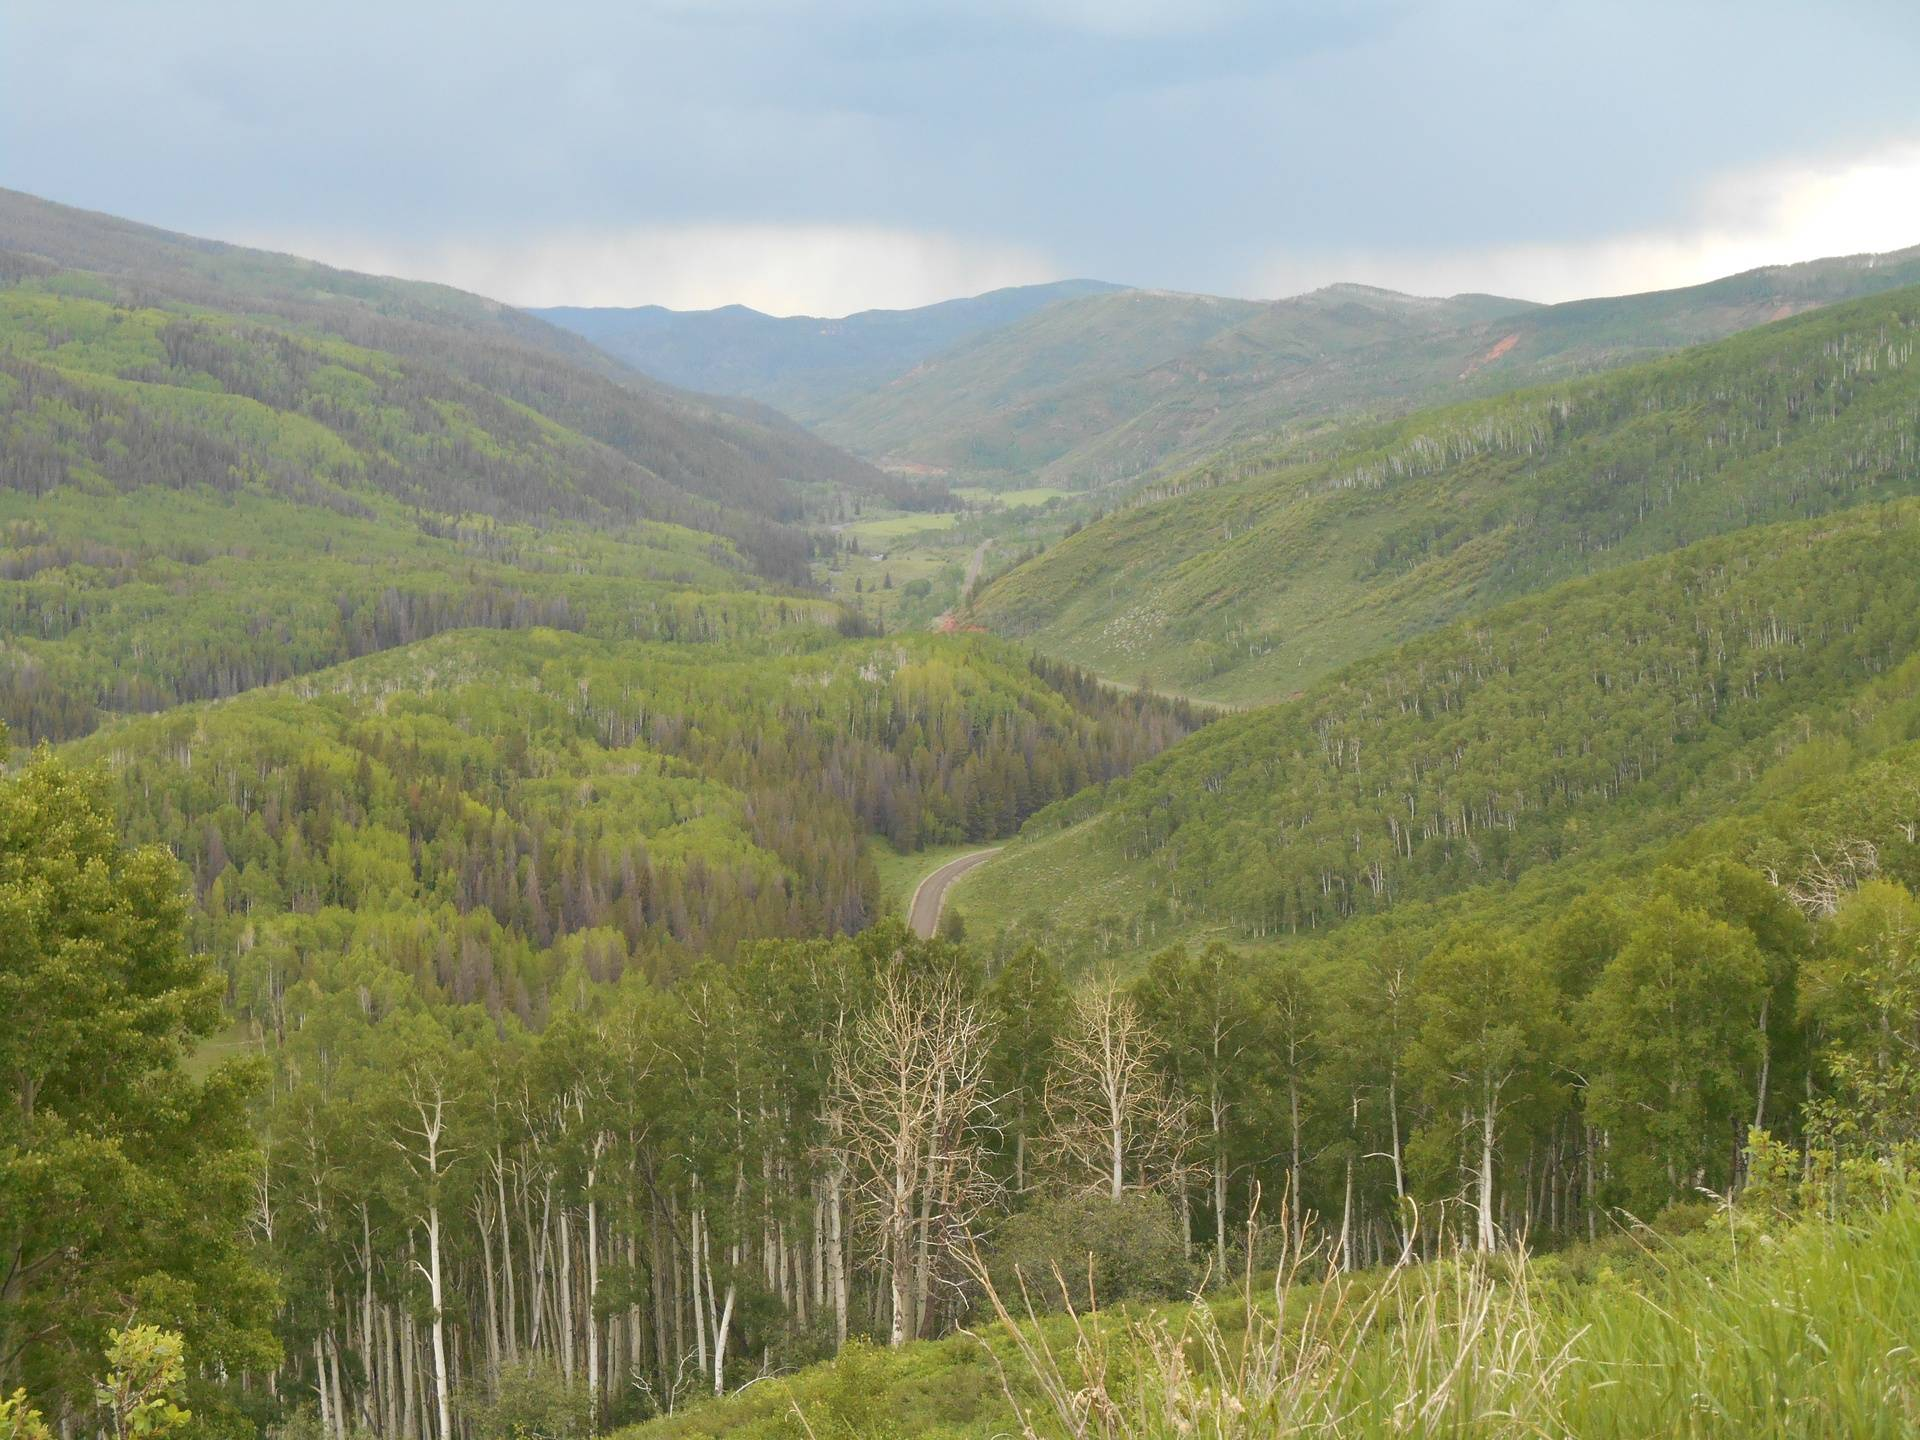 Valley view from passes